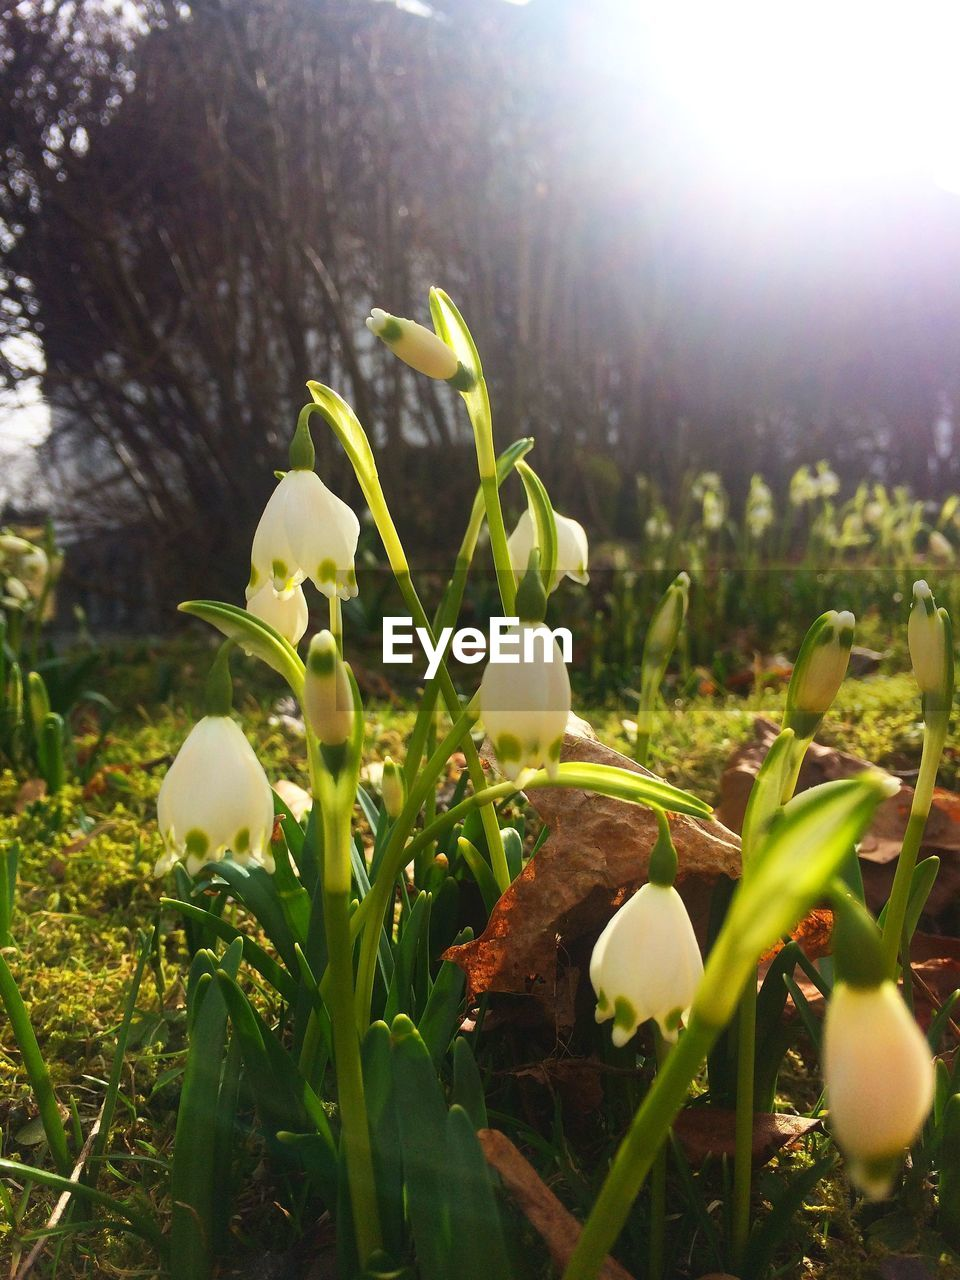 growth, nature, beauty in nature, flower, plant, freshness, snowdrop, fragility, no people, outdoors, close-up, sunlight, green color, day, springtime, grass, blooming, flower head, crocus